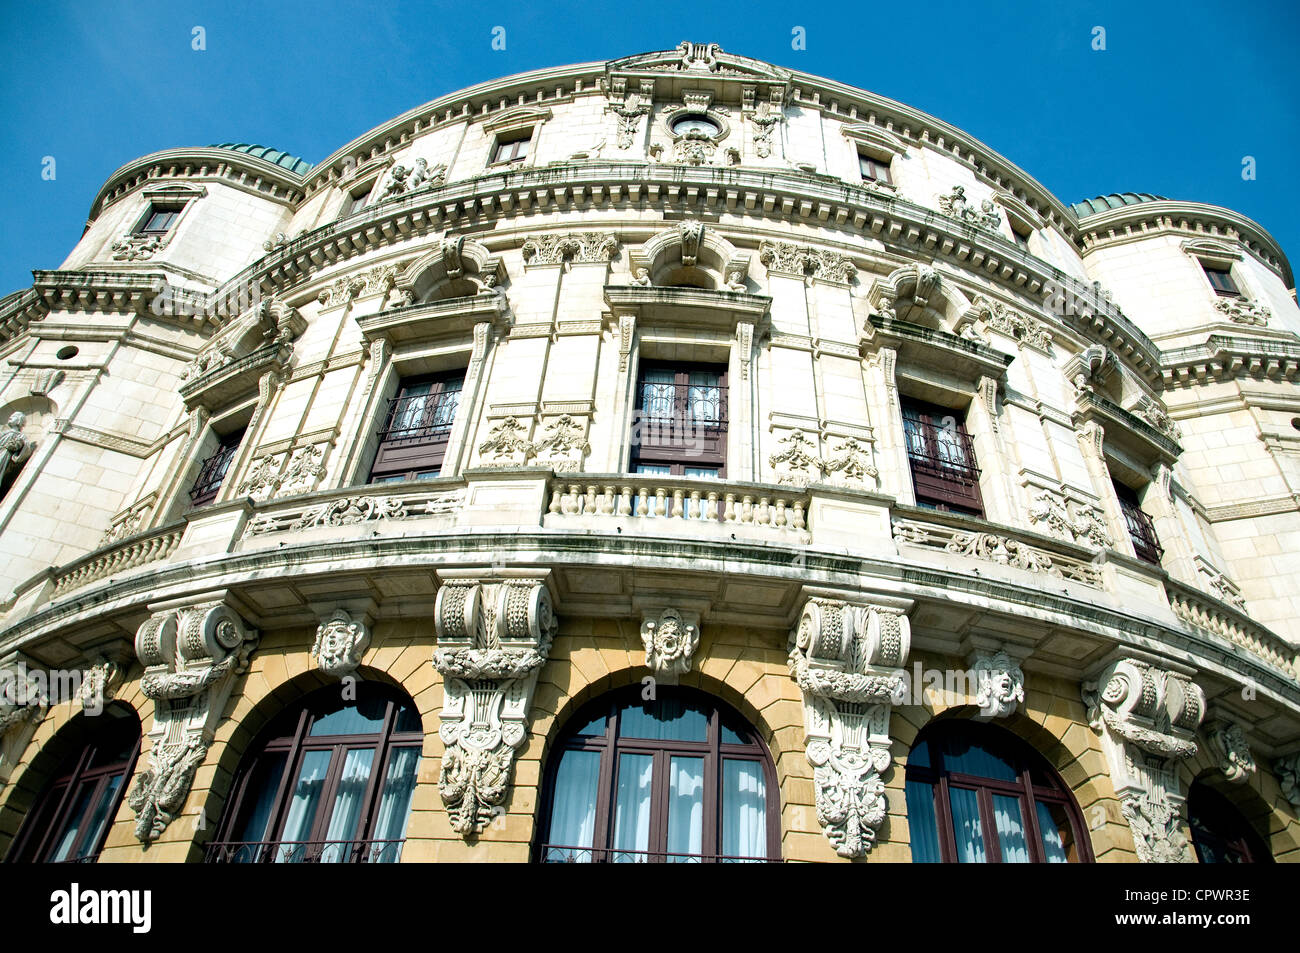 The elaborate façade of the 19th-century Arriaga theatre in Bilbao, its style described as eclectic - Stock Image